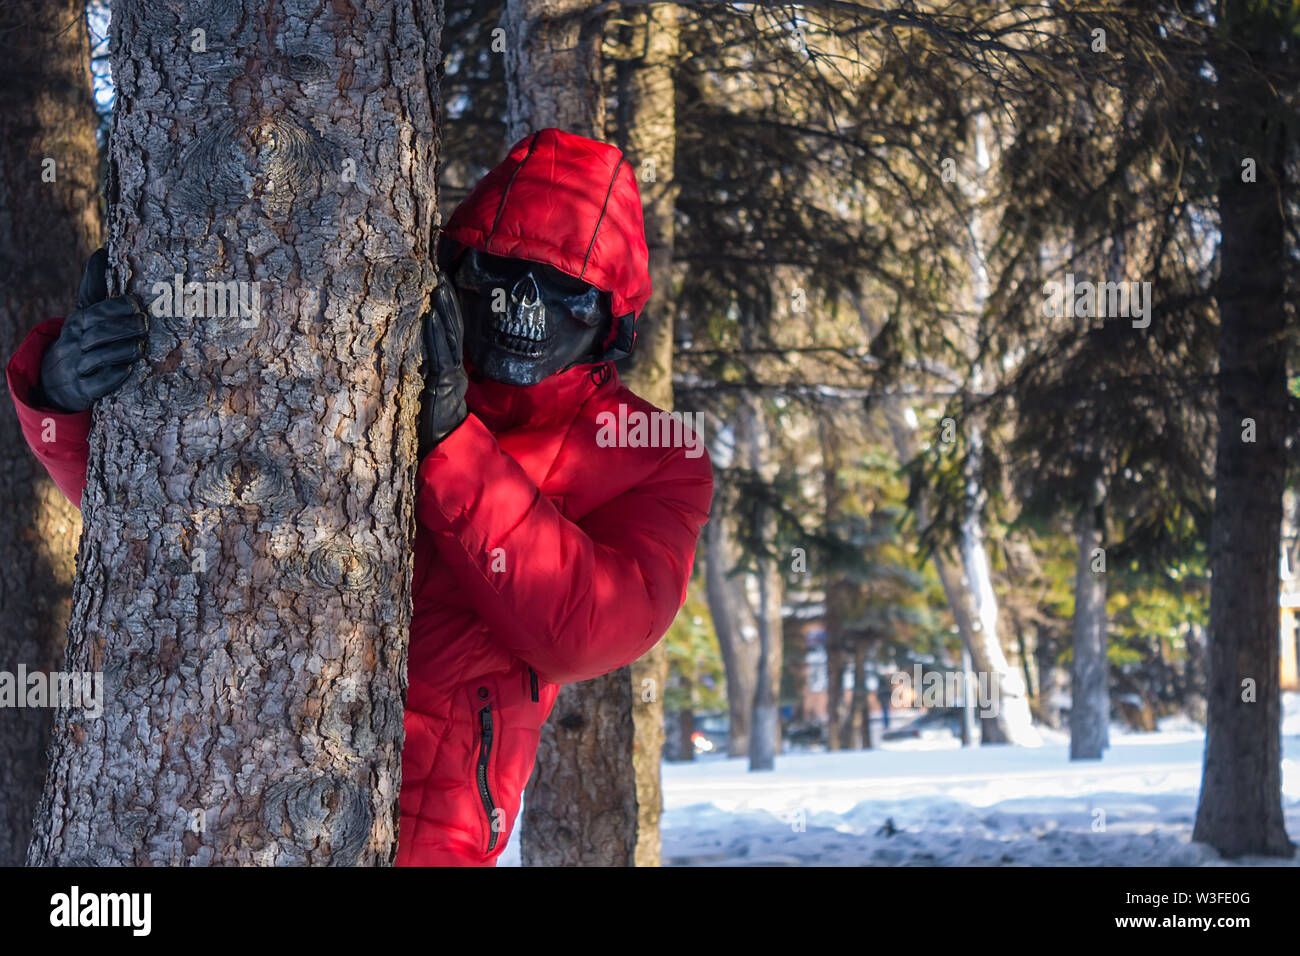 The terrible killer in the mask is waiting for his victim in the park - Stock Image